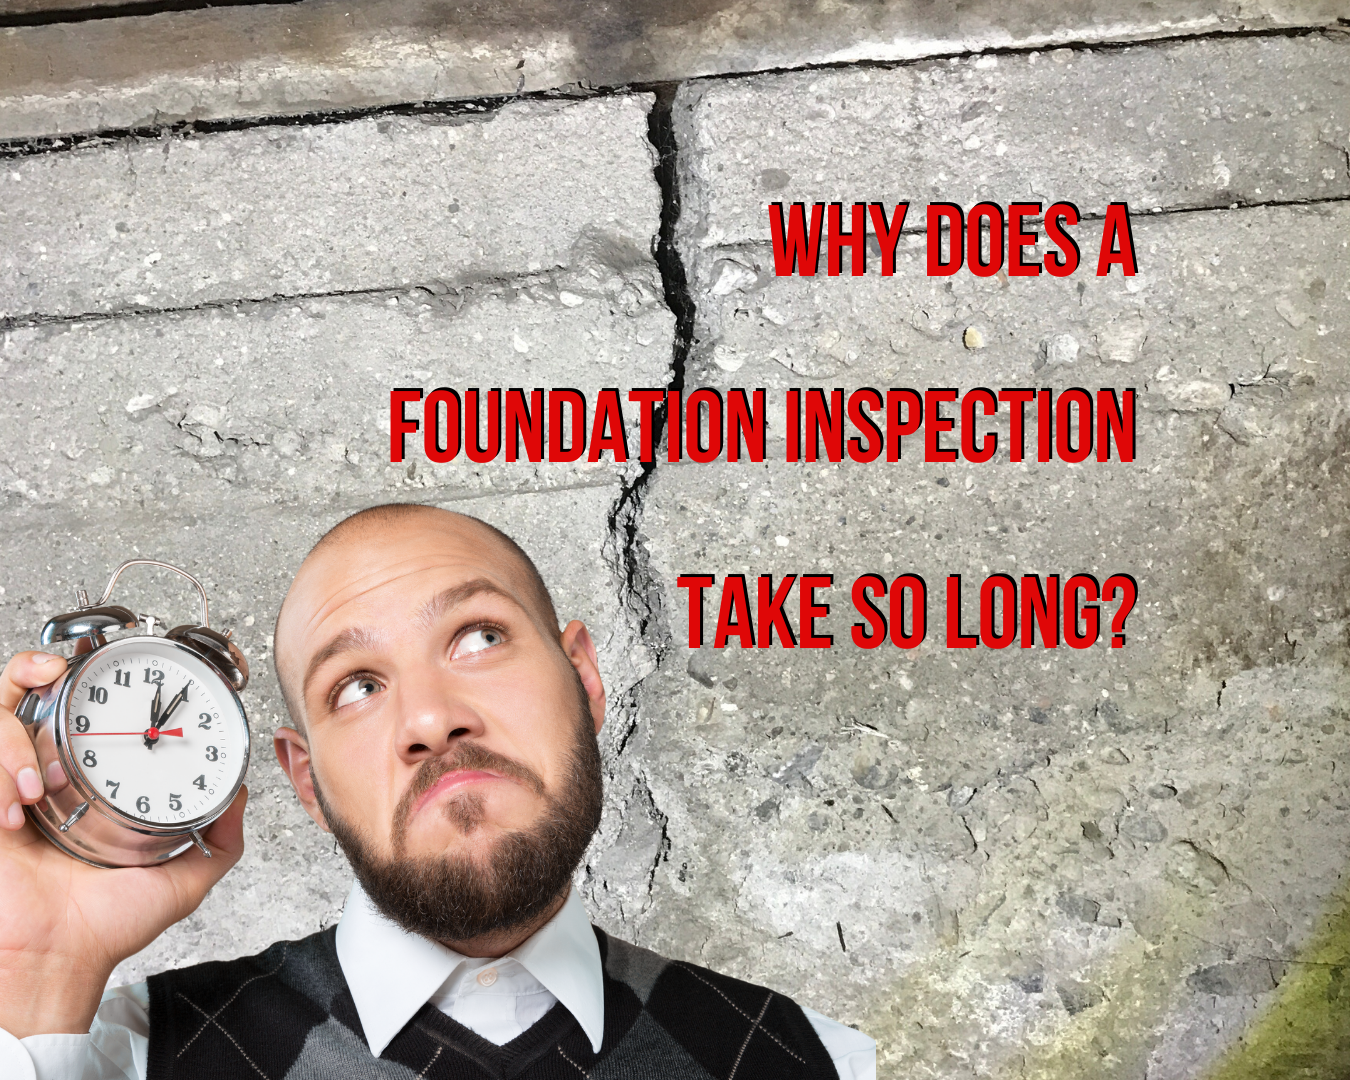 Why Does A Foundation Inspection Take So Long?